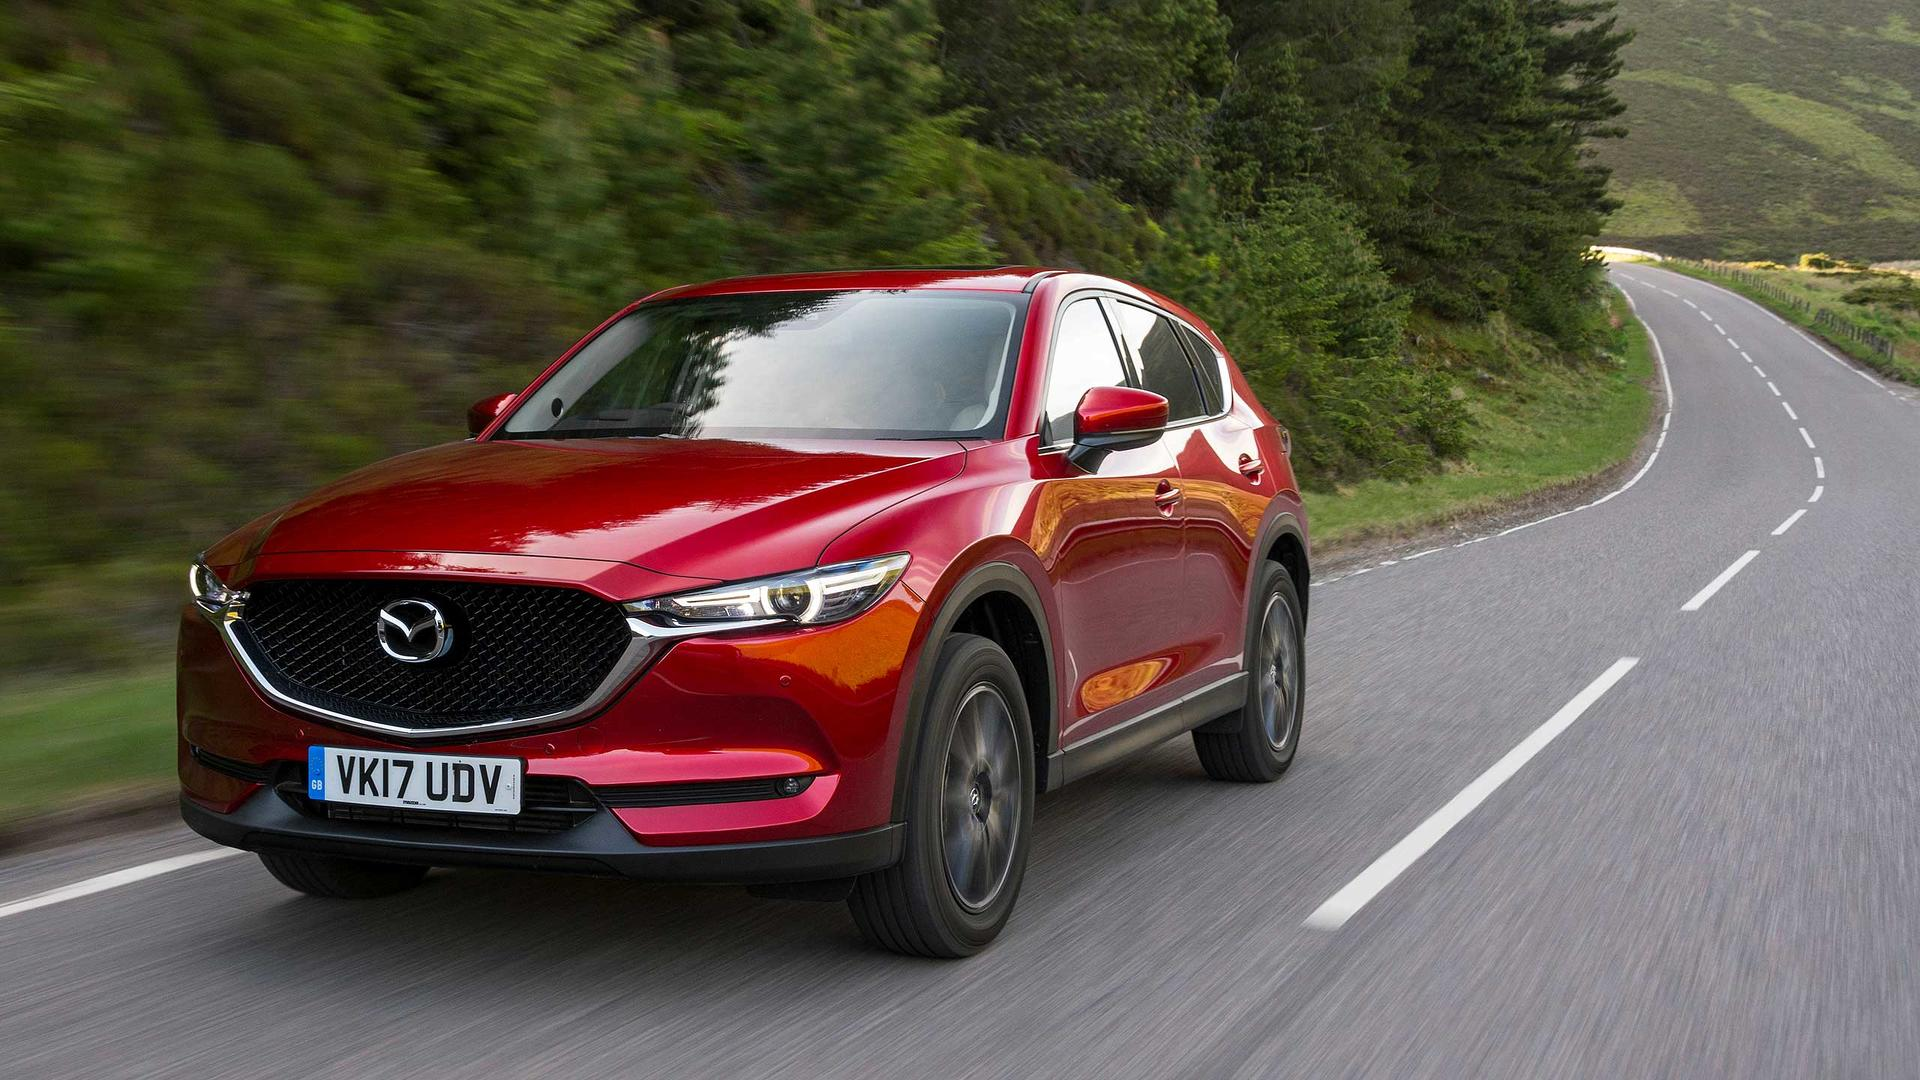 harpenden keynes offers grays in immediate mazda milton retailer brayley delivery